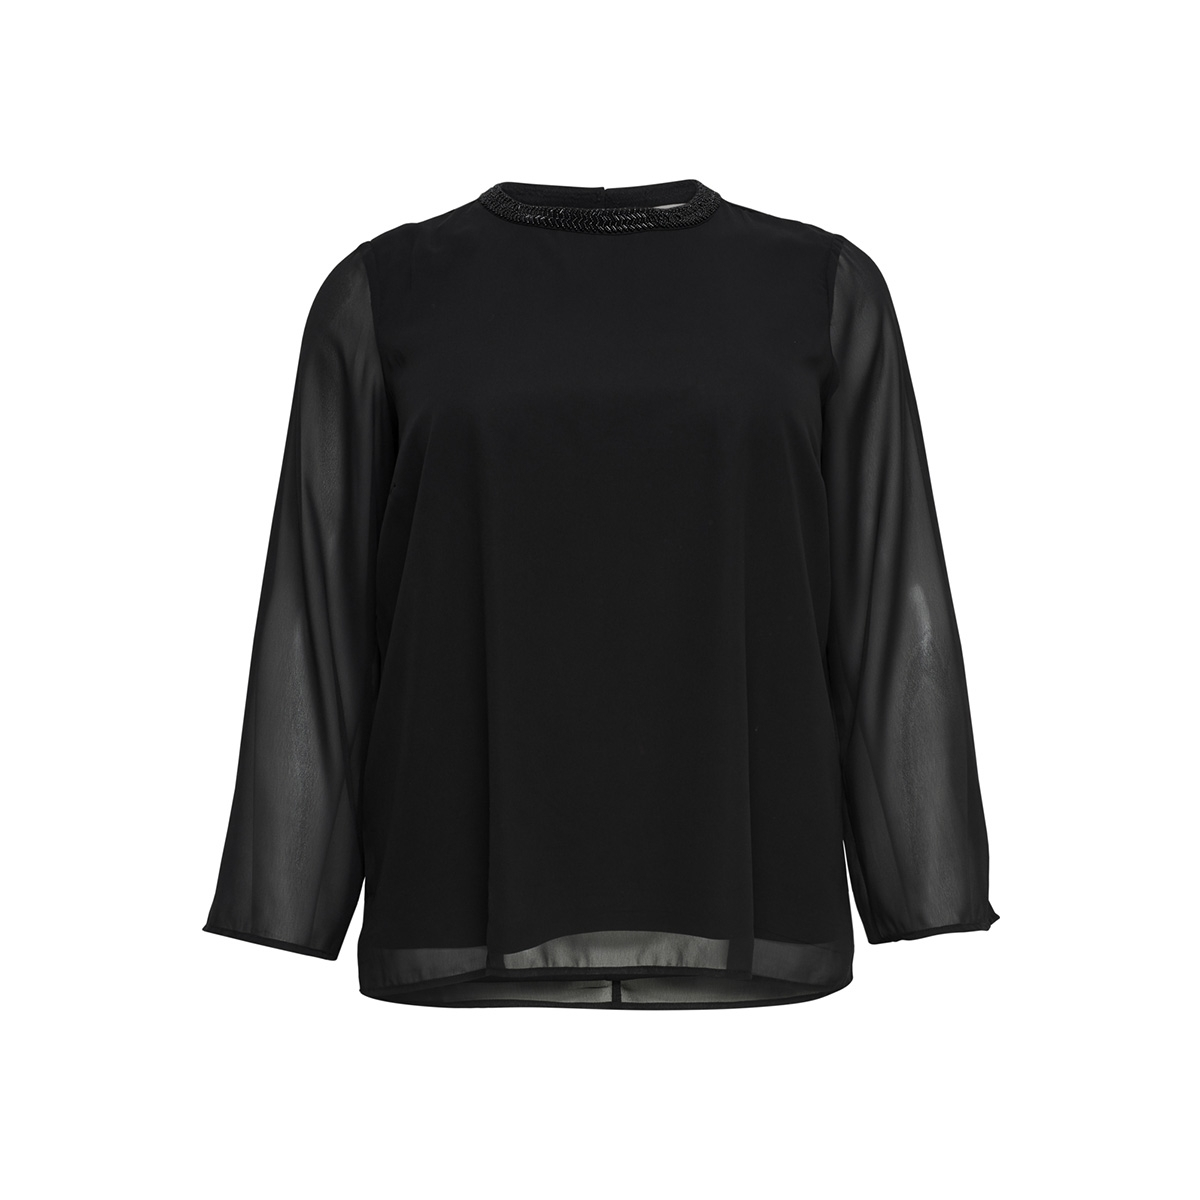 carcad l/s sleeve top 15168997 only carmakoma blouse black